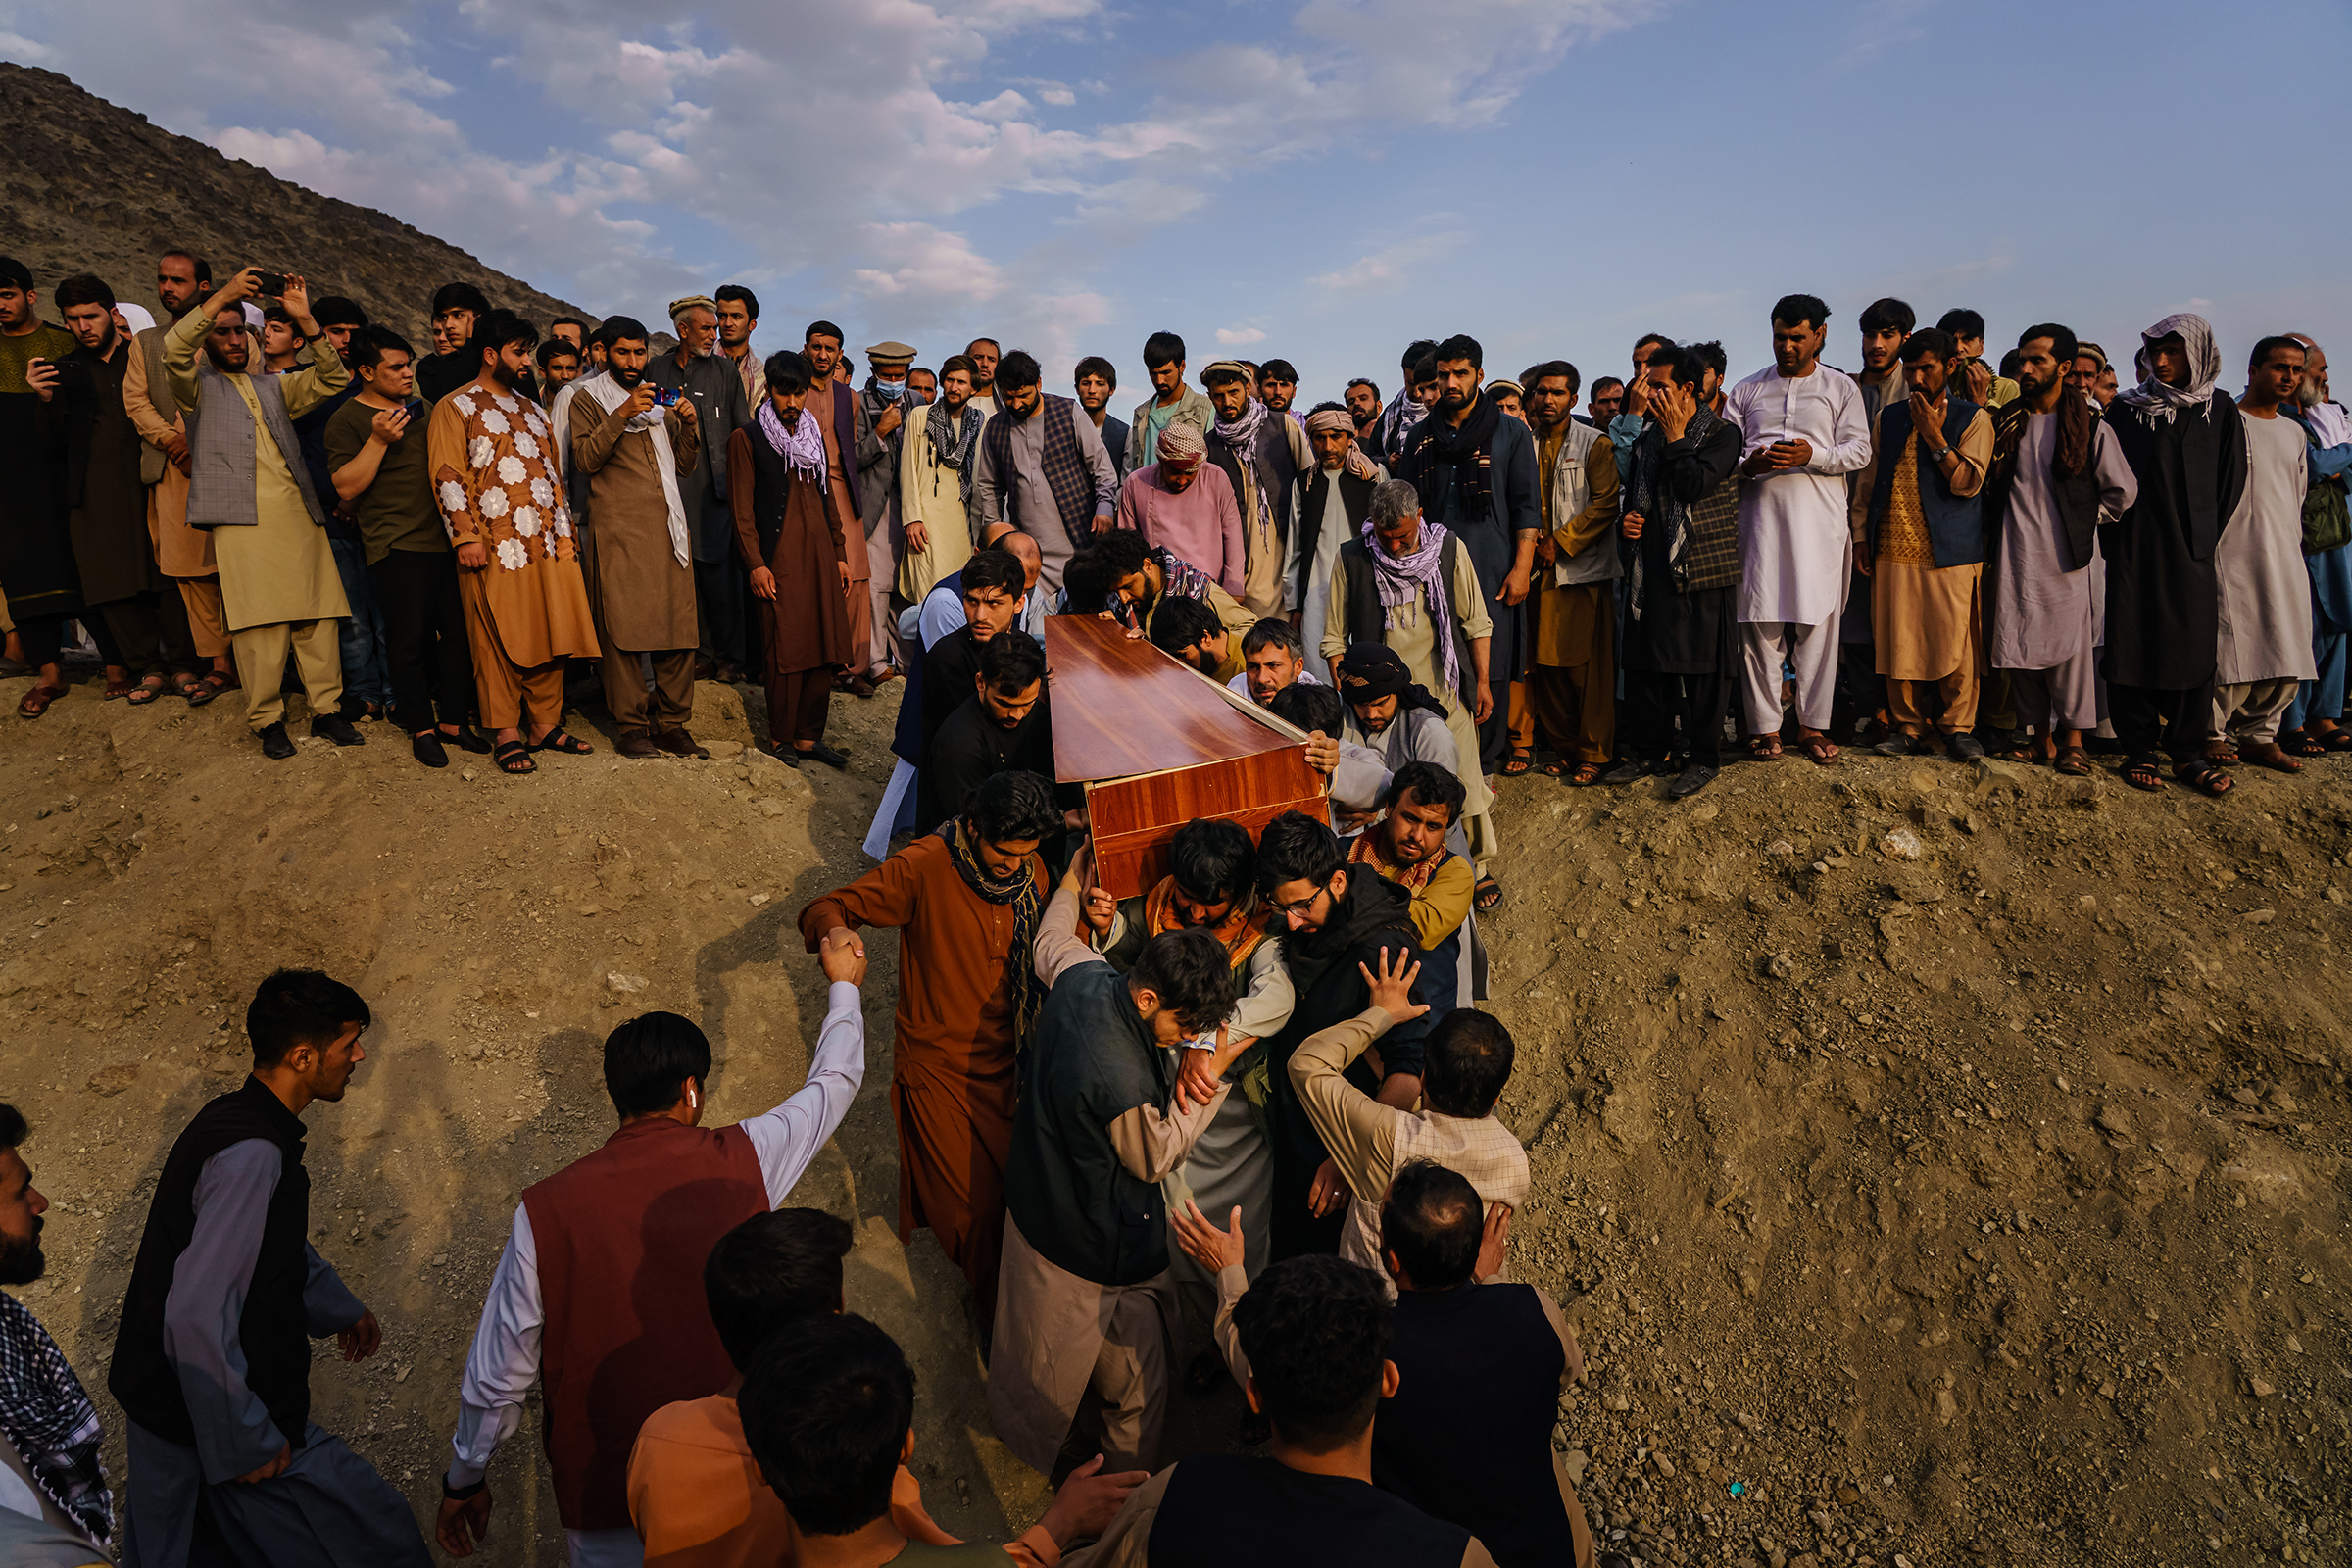 Relatives and friends attend a mass funeral on Aug. 30 for members of the family killed in the strike.